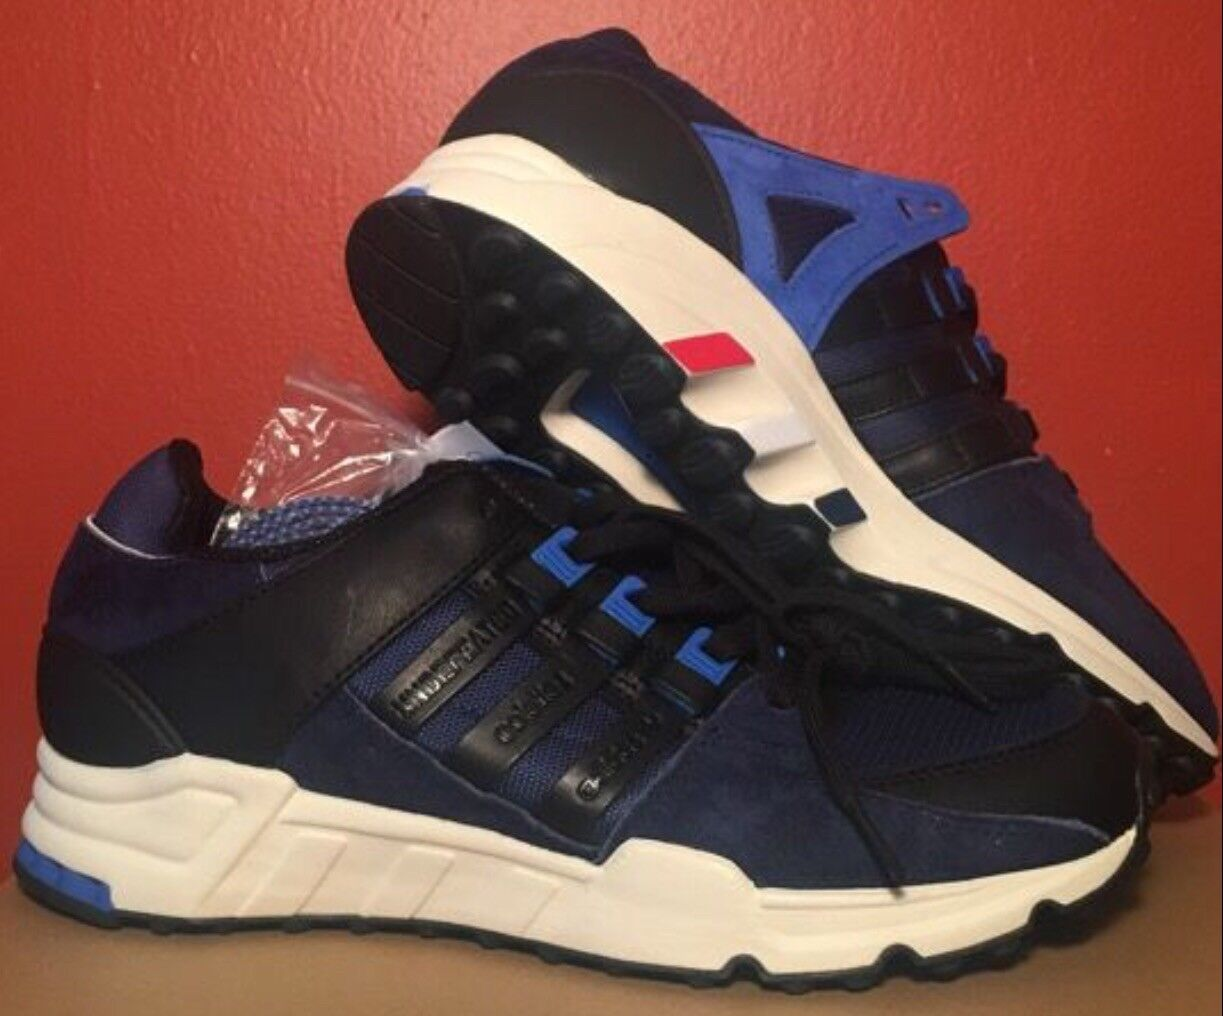 Adidas x Colette x Undefeated x EQT Support SE Sneakers sz 9.5 bluee Black CP9615